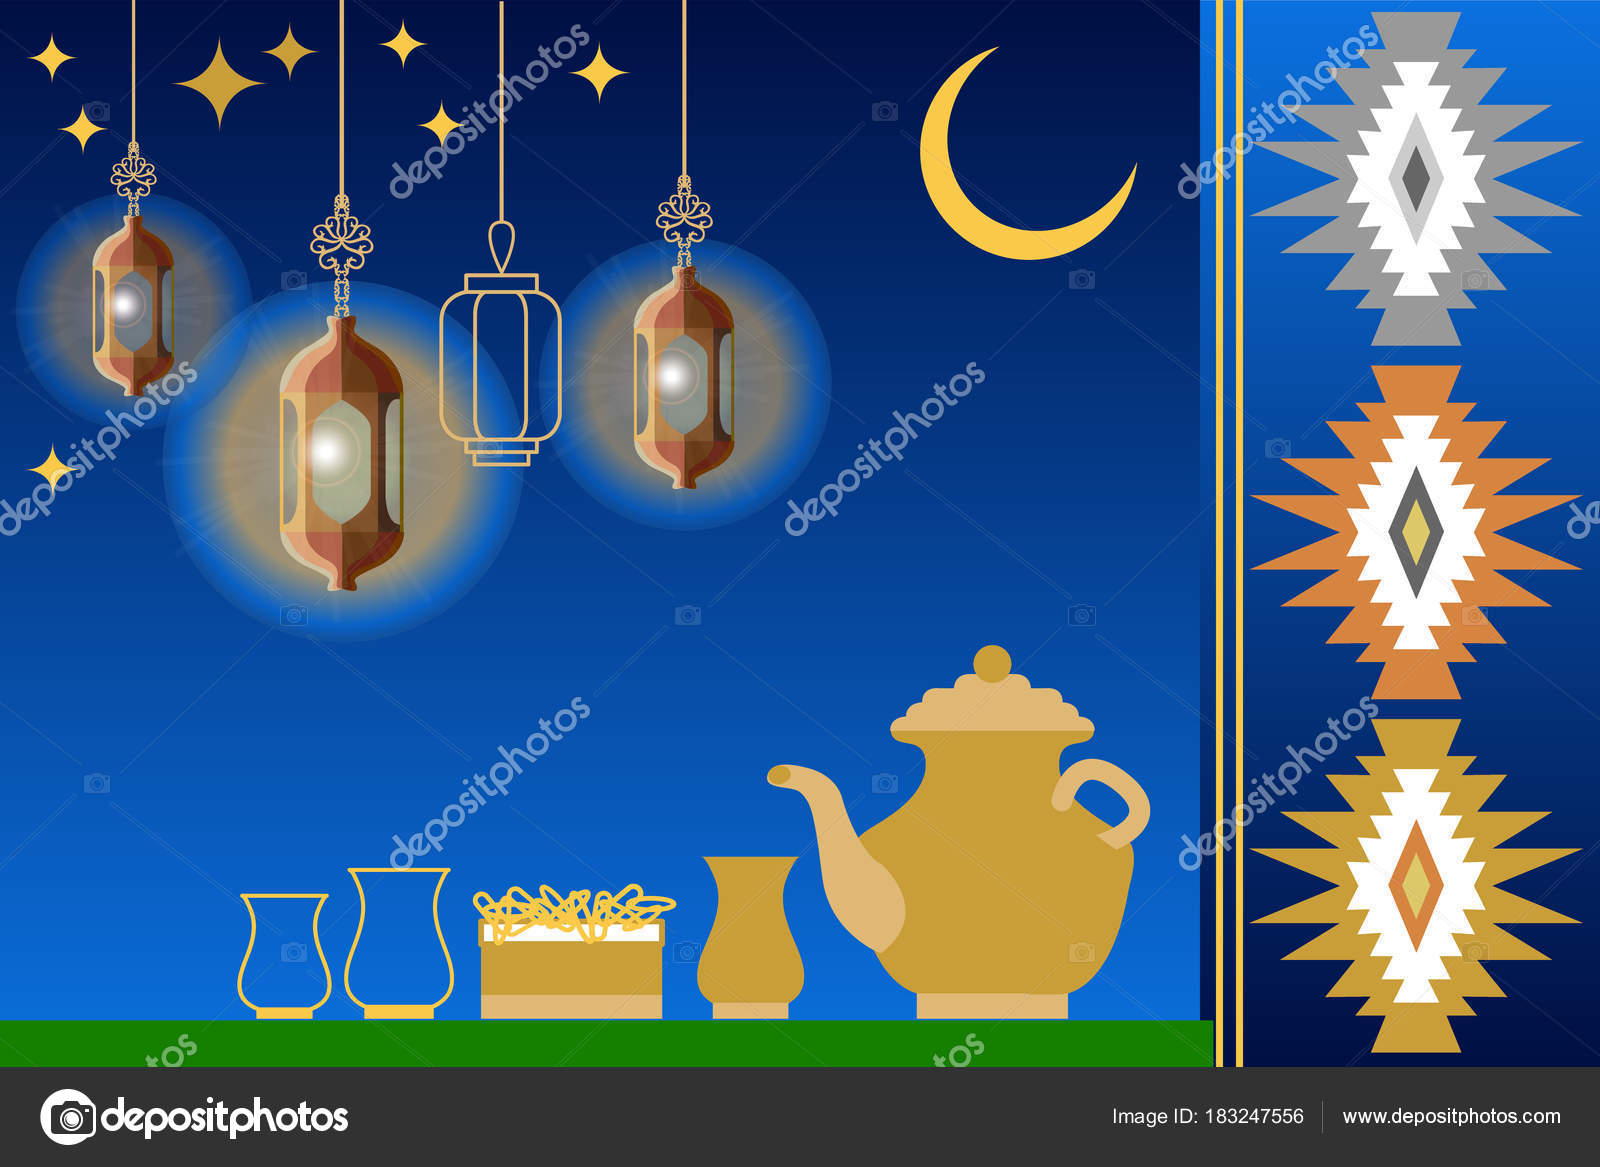 Iftar party greeting card food drink crescent moon stars template for ramadan kareem greeting cards covers banners posters design inspired by turkish and arabic art vector by svetlanakononova m4hsunfo